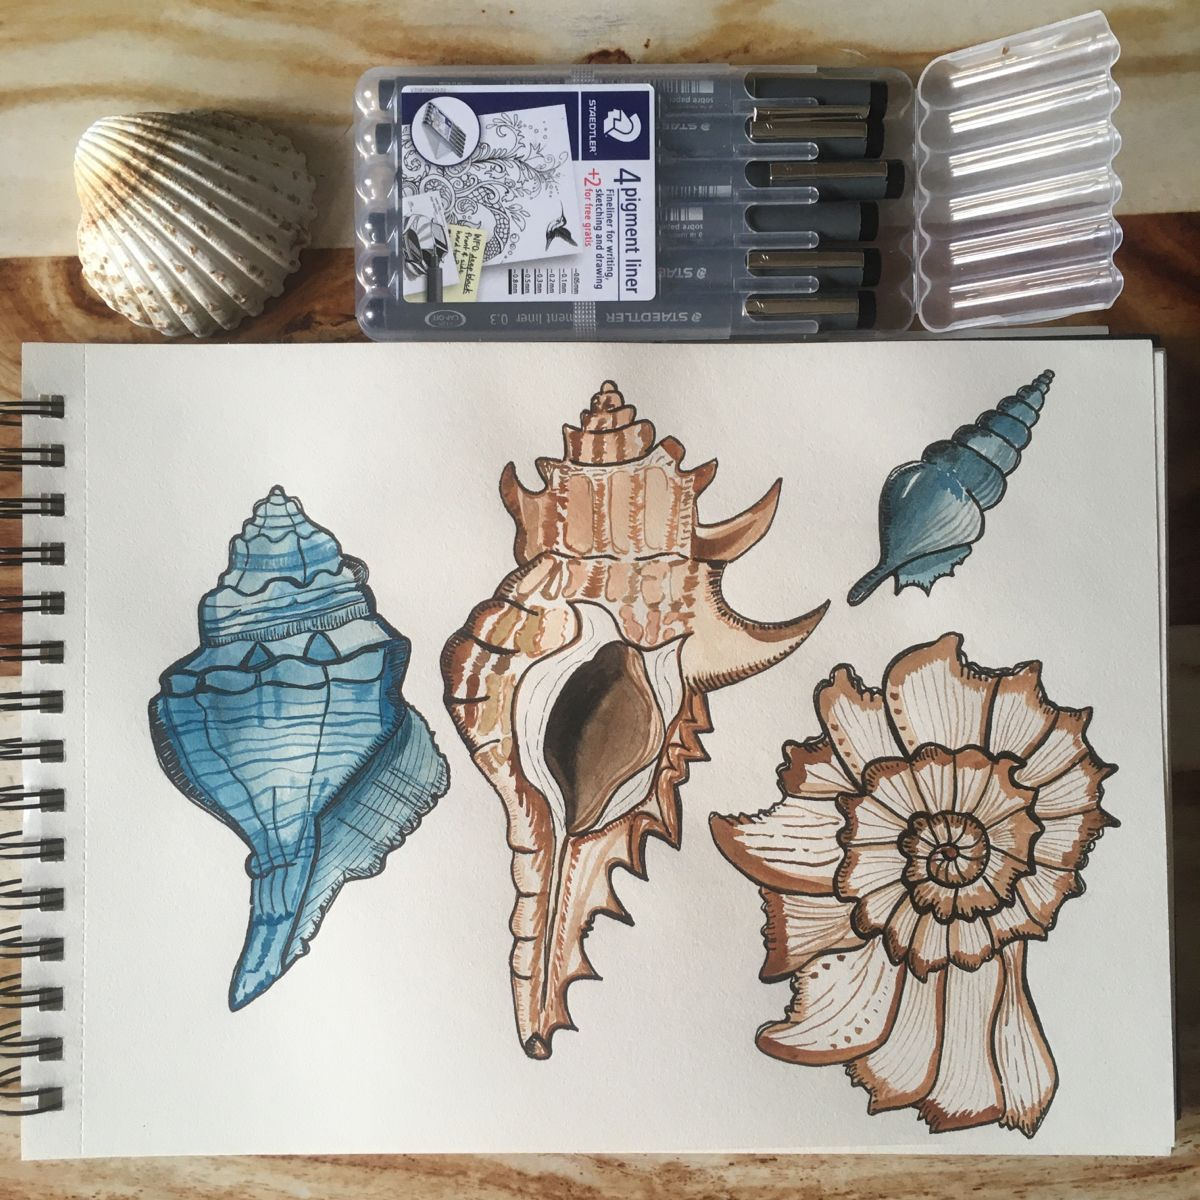 This is a original watercolor sketch of sea shells. Size A4  You can find more art like this on Instagram @frau_mari_illustration   #watercolorillustration #childrenillustration #watercolorart #watercolorartist #illustration #illustrator #howtopaint #acuarela #cottageart #cottagedecor #cottagegarden #oceanlovers #oceanart #seashells #animalillustration